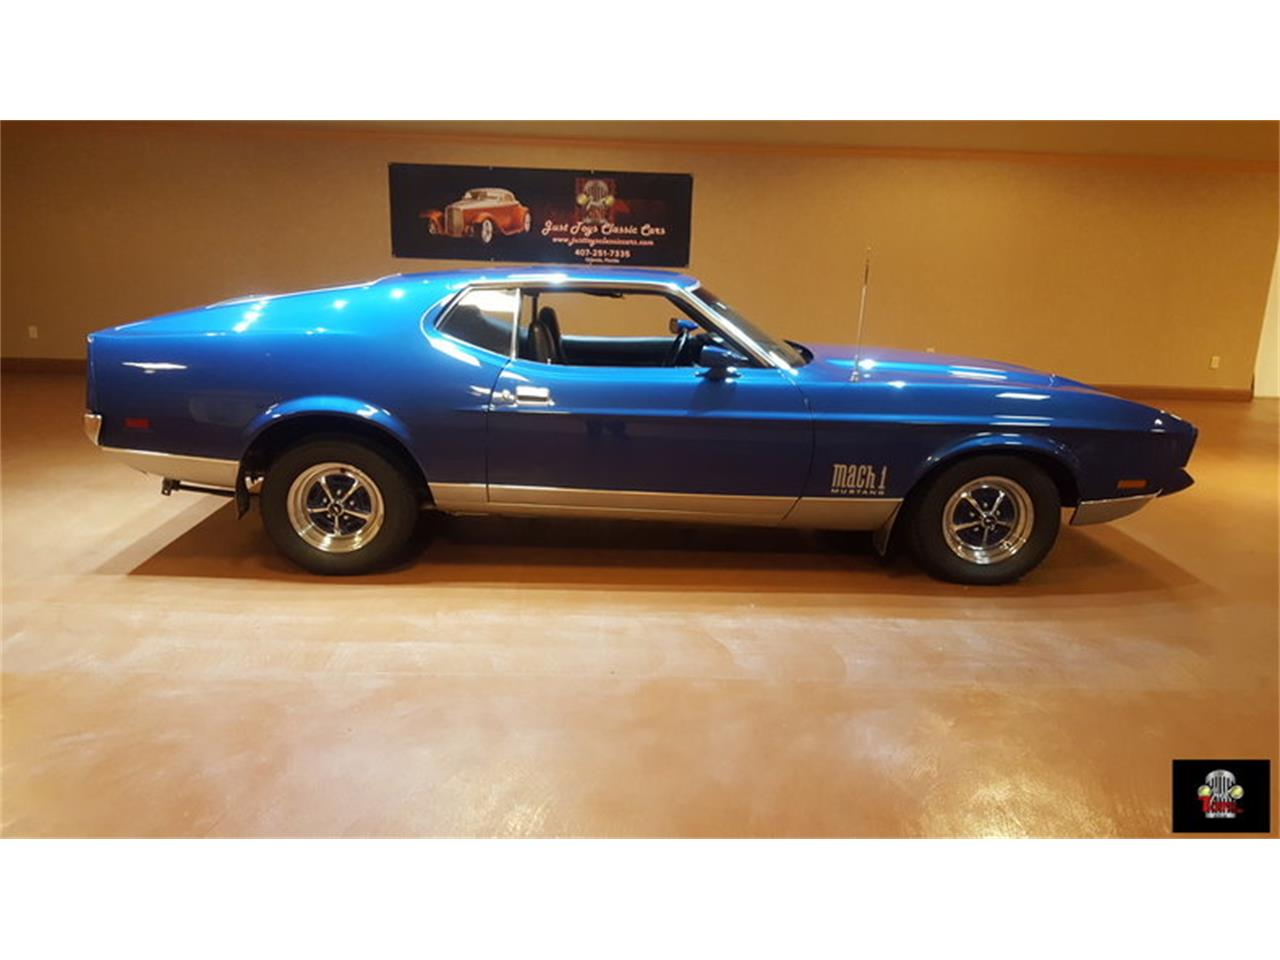 Large picture of 1971 ford mustang mach 1 located in orlando florida 23995 00 offered by